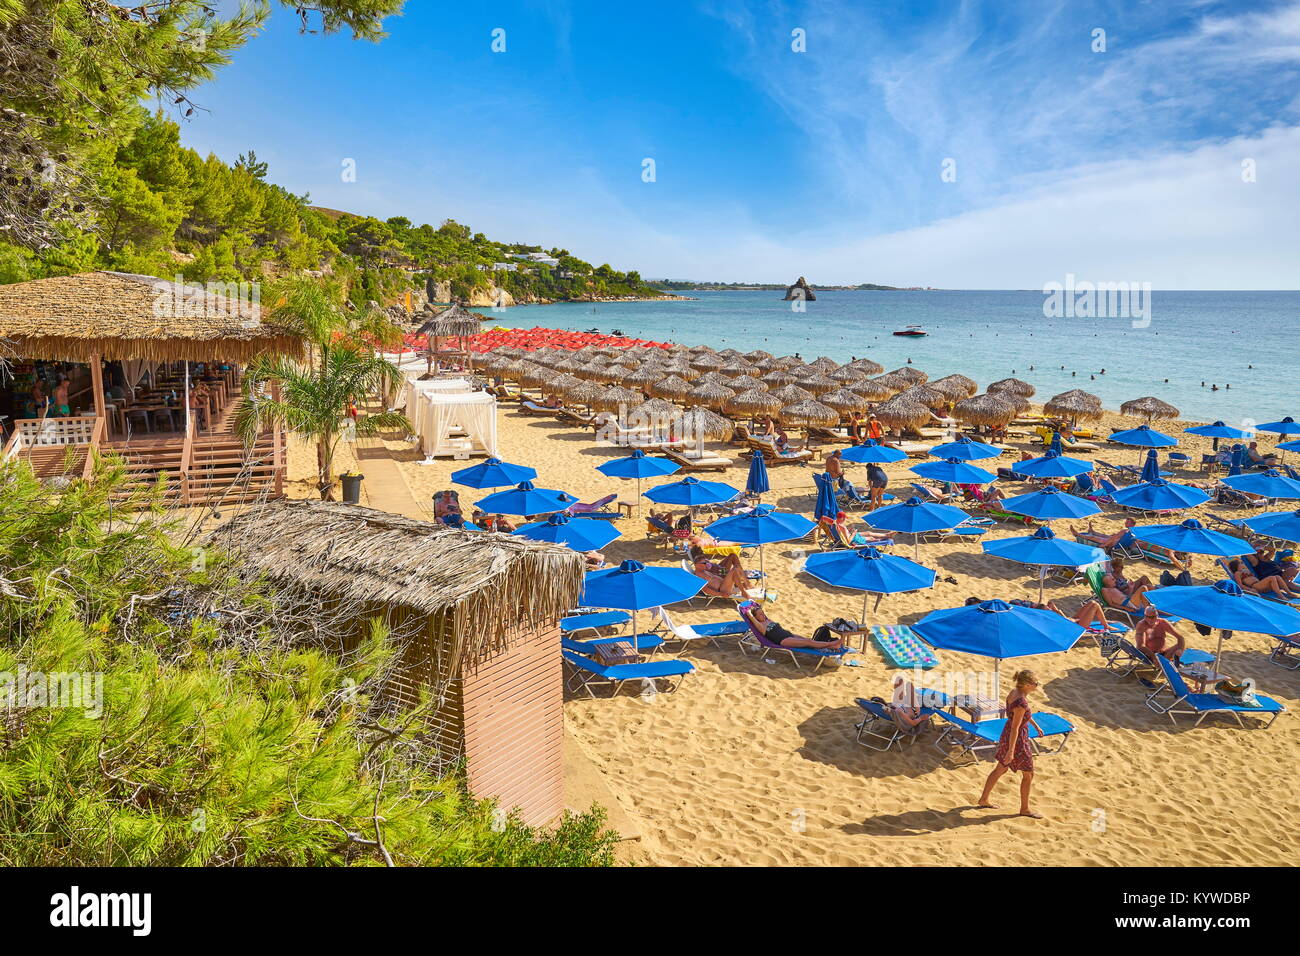 Gialos Beach near Agrostoli, Kefalonia Island, Greece - Stock Image